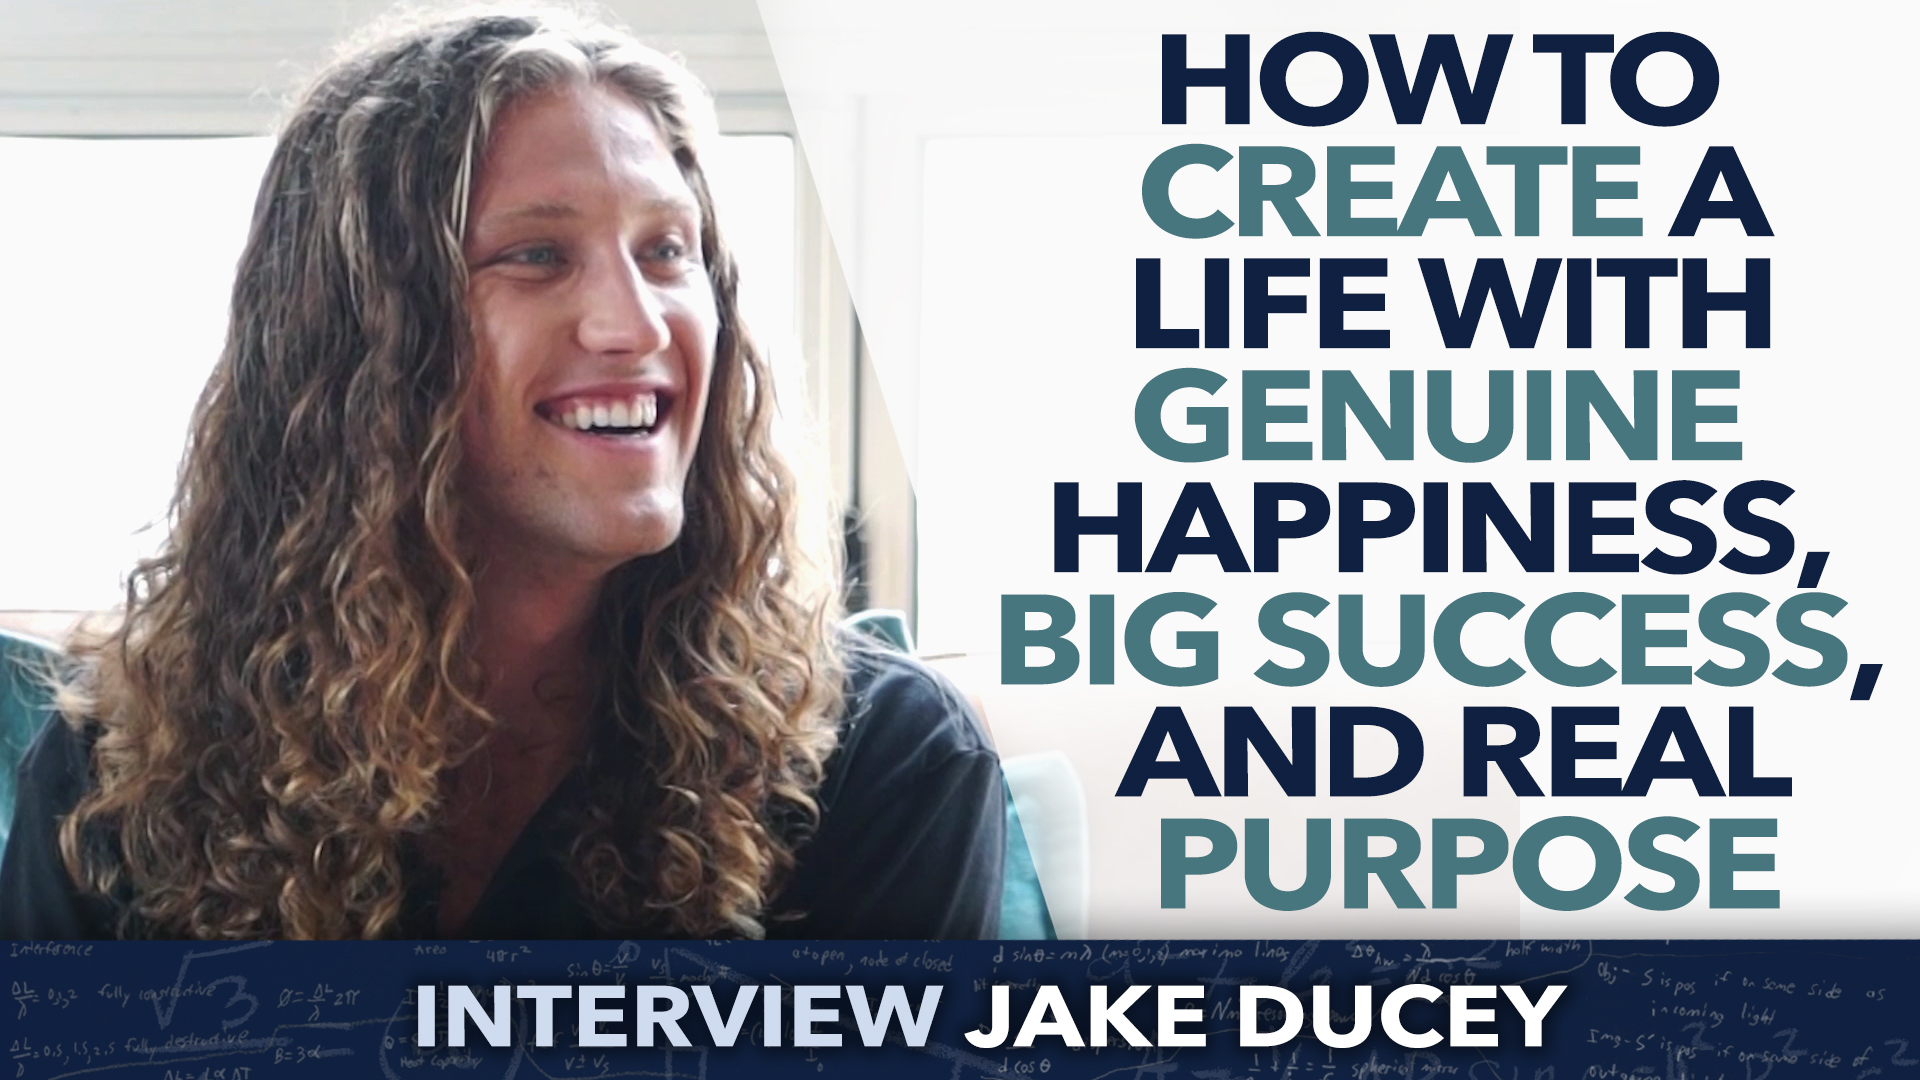 How to create a life with genuine happiness, big success, and real purpose? – Jake Ducey